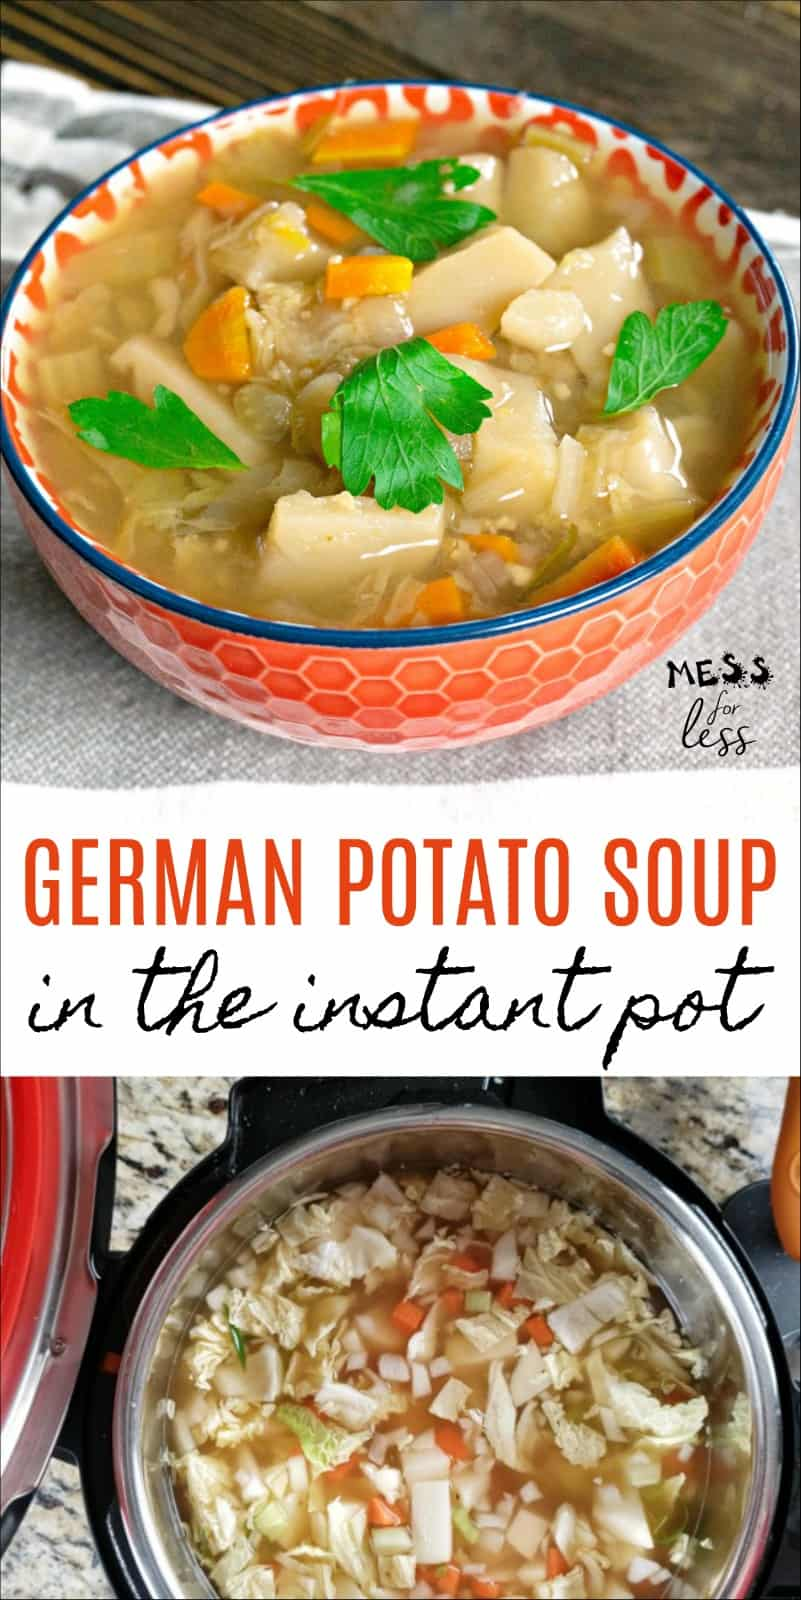 This German Potato Soup in the Instant Pot is hearty and delicious and ready in just 10 minutes! #instantpot #instantpotrecipes #instantpotsoup #soup #souprecipe